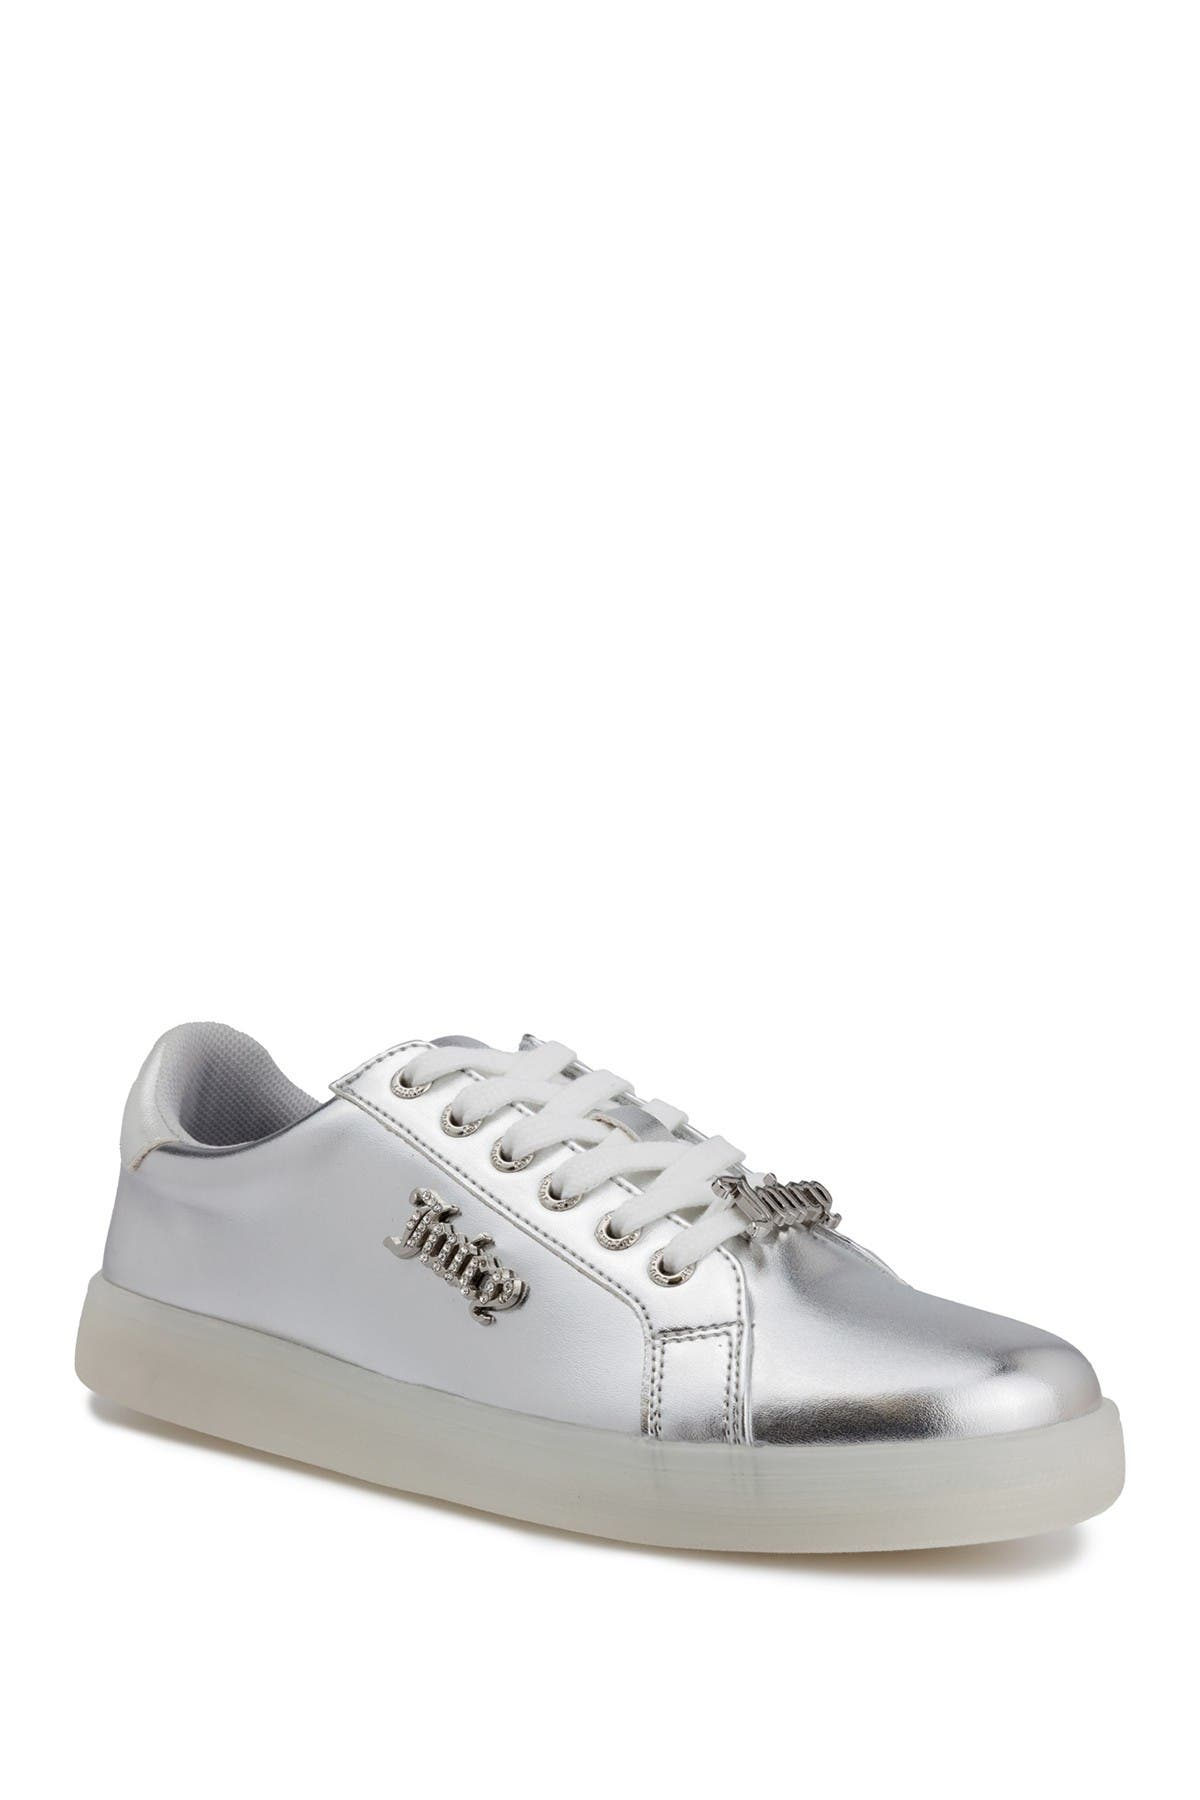 Image of Juicy Couture Connect Fashion Sneaker